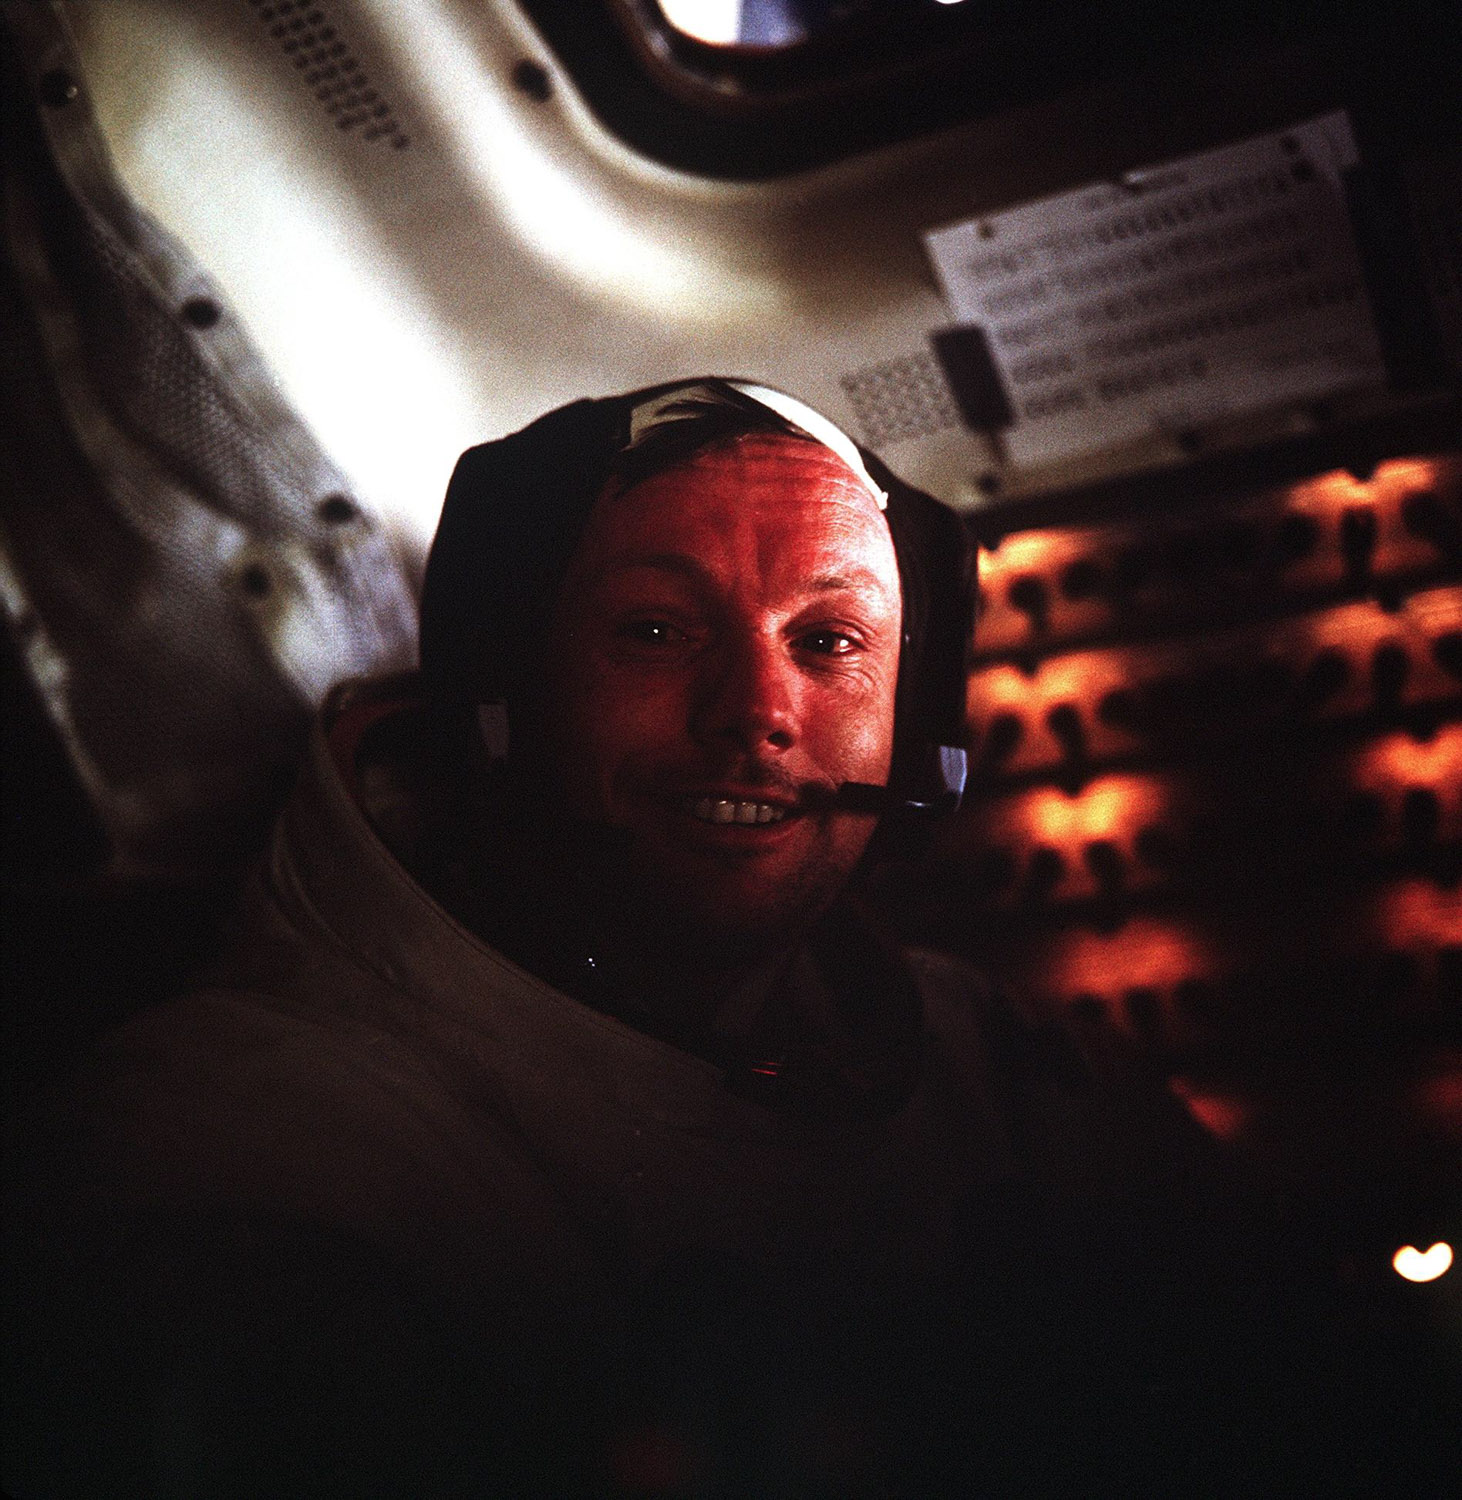 Neil Armstrong inside the Lunar Module as it rests on the lunar surface after completion of his historic moonwalk. Credit: Buzz Aldrin, NASA ID: AS11-37-5528